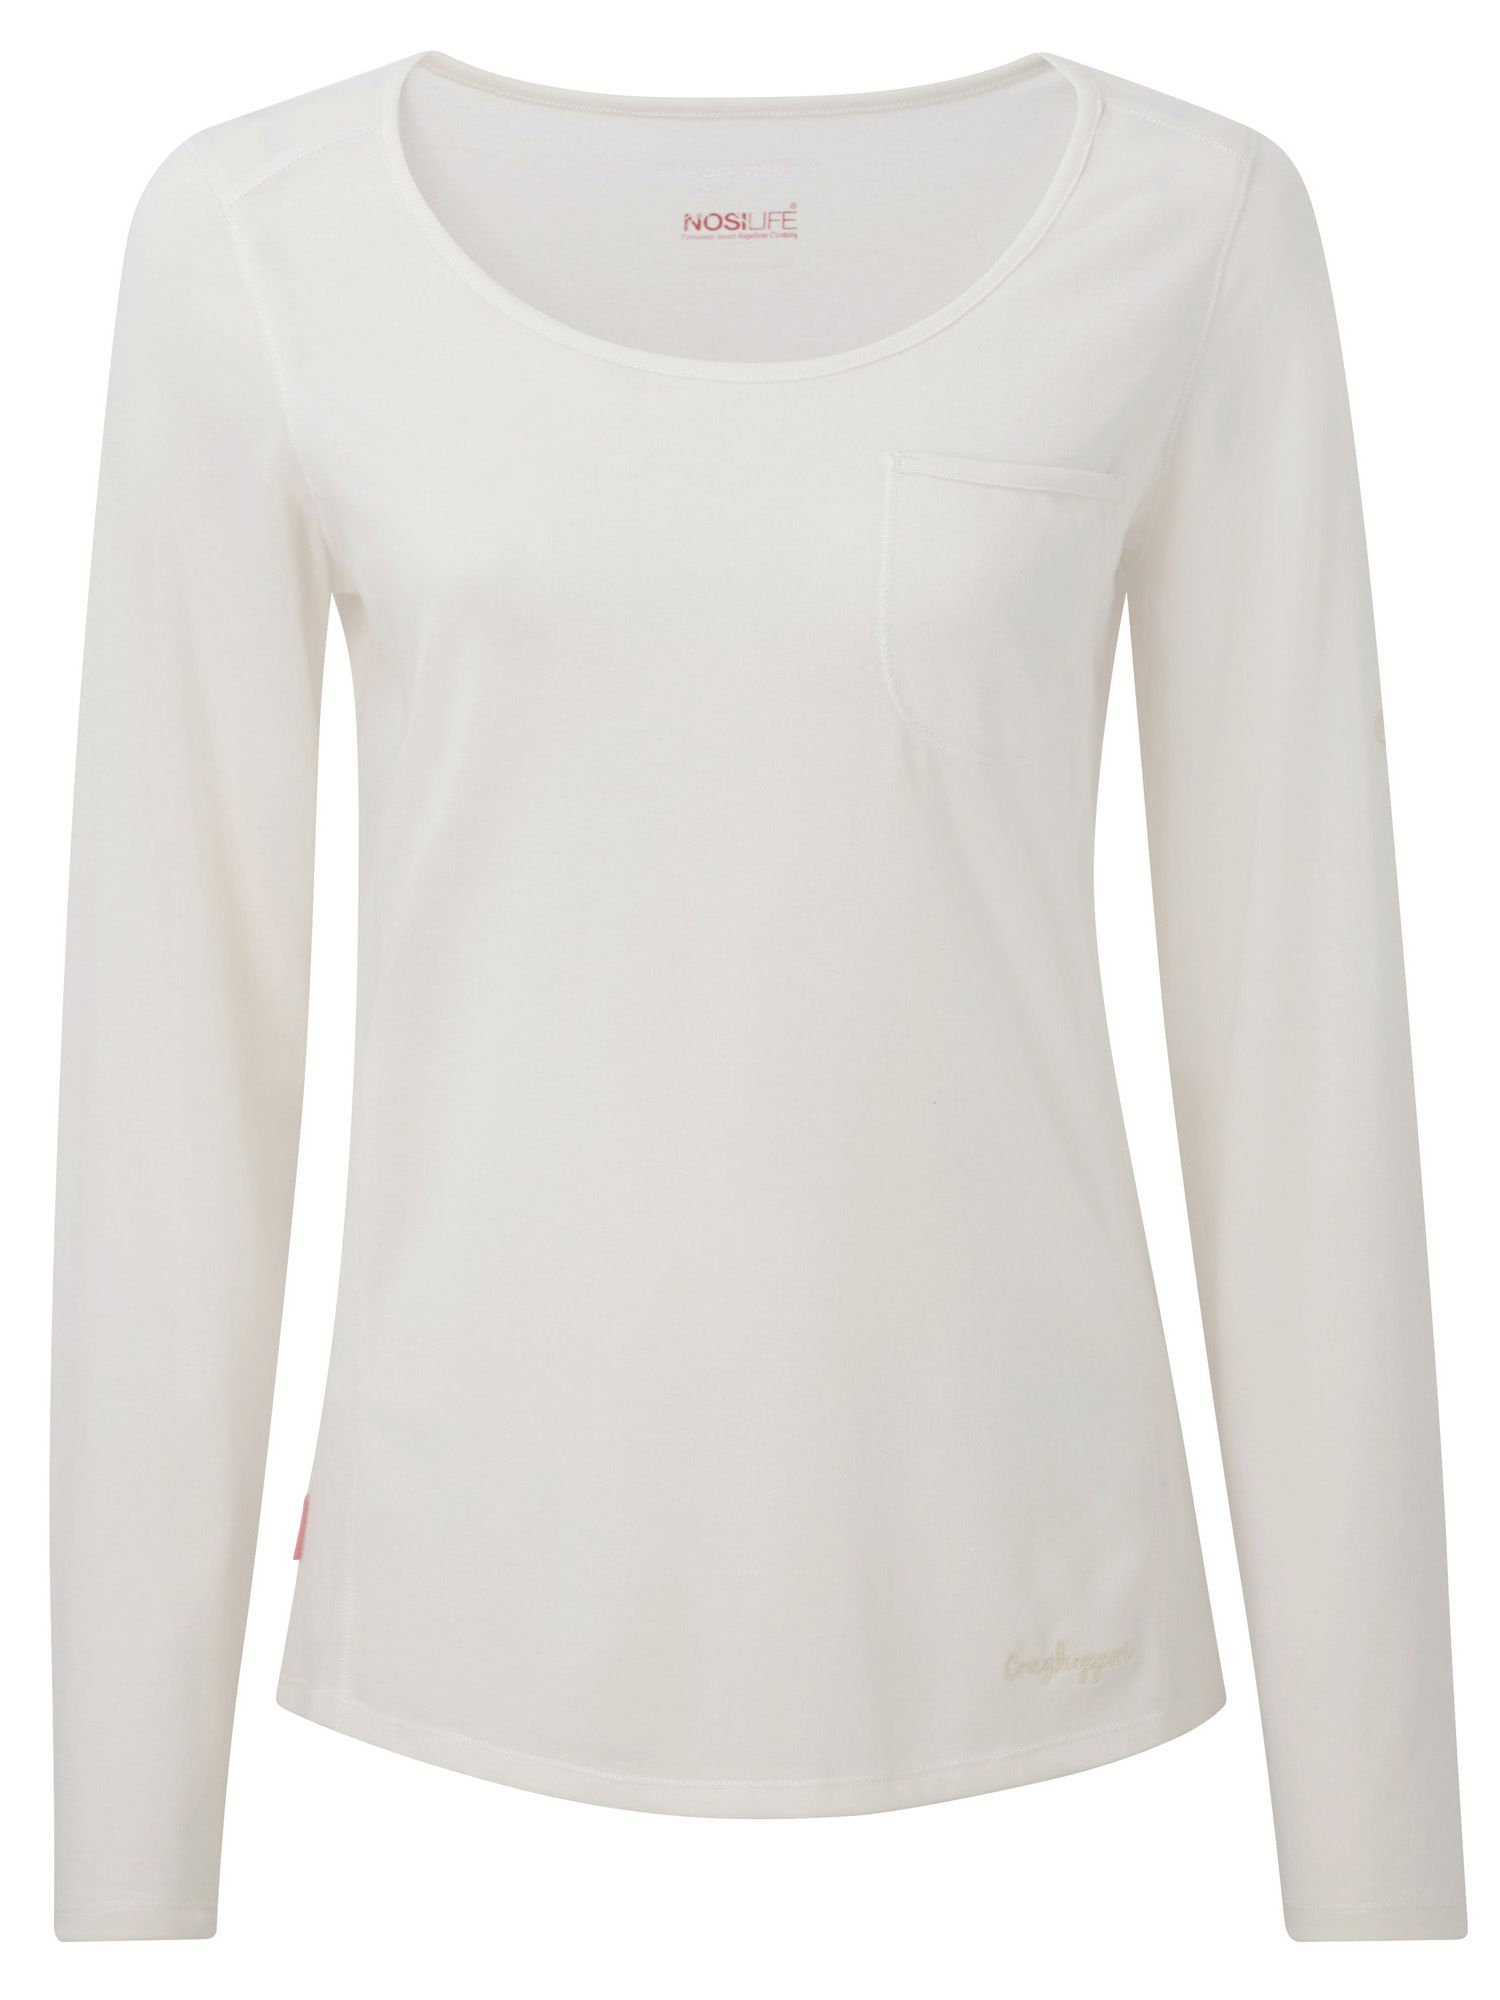 Craghoppers Craghoppers NosiLife Long Sleeved Tee, White